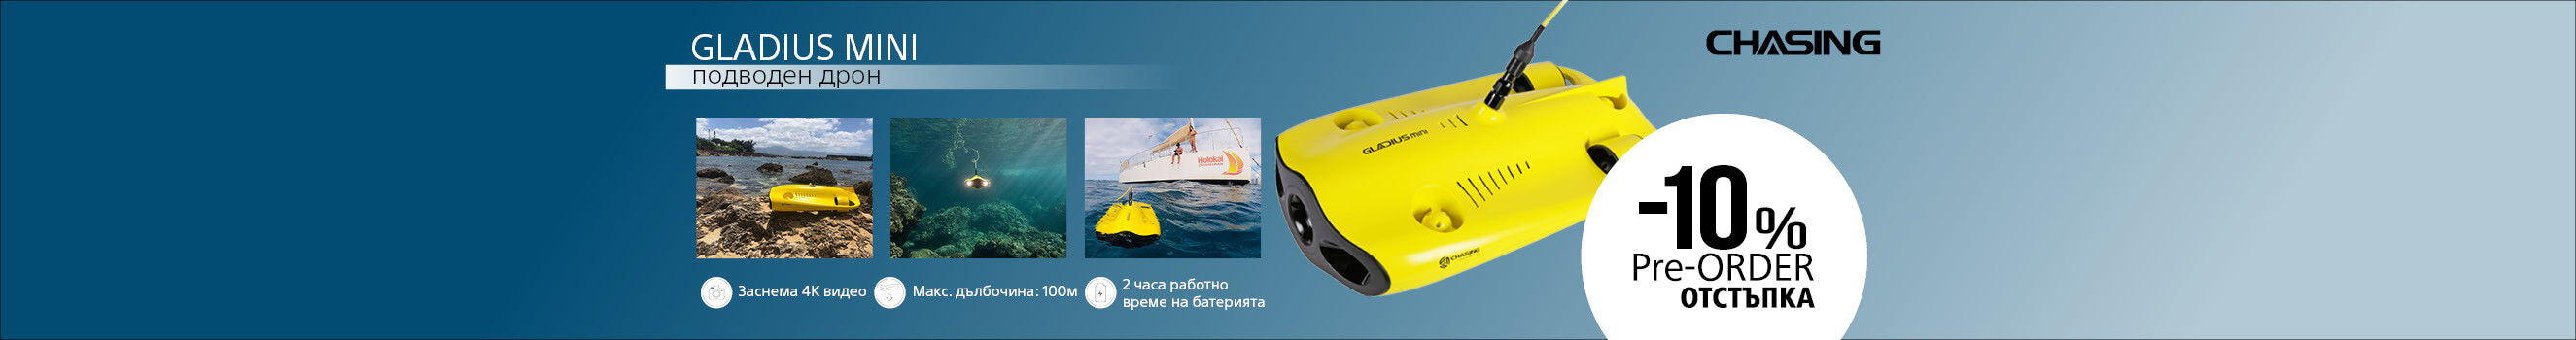 Underwater drone Gladius at discount